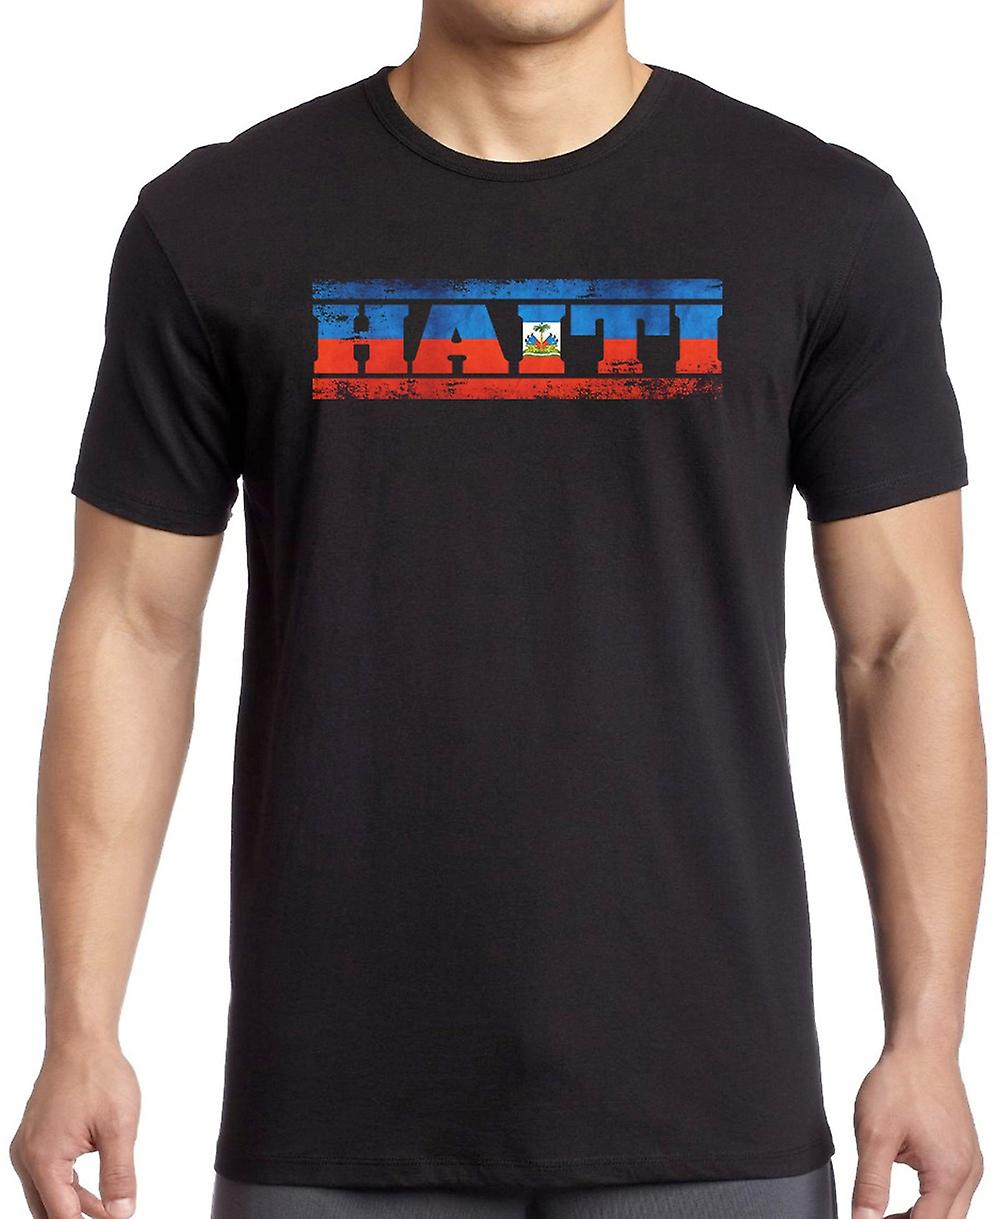 Haiti Haitian Flag - Words T Shirt